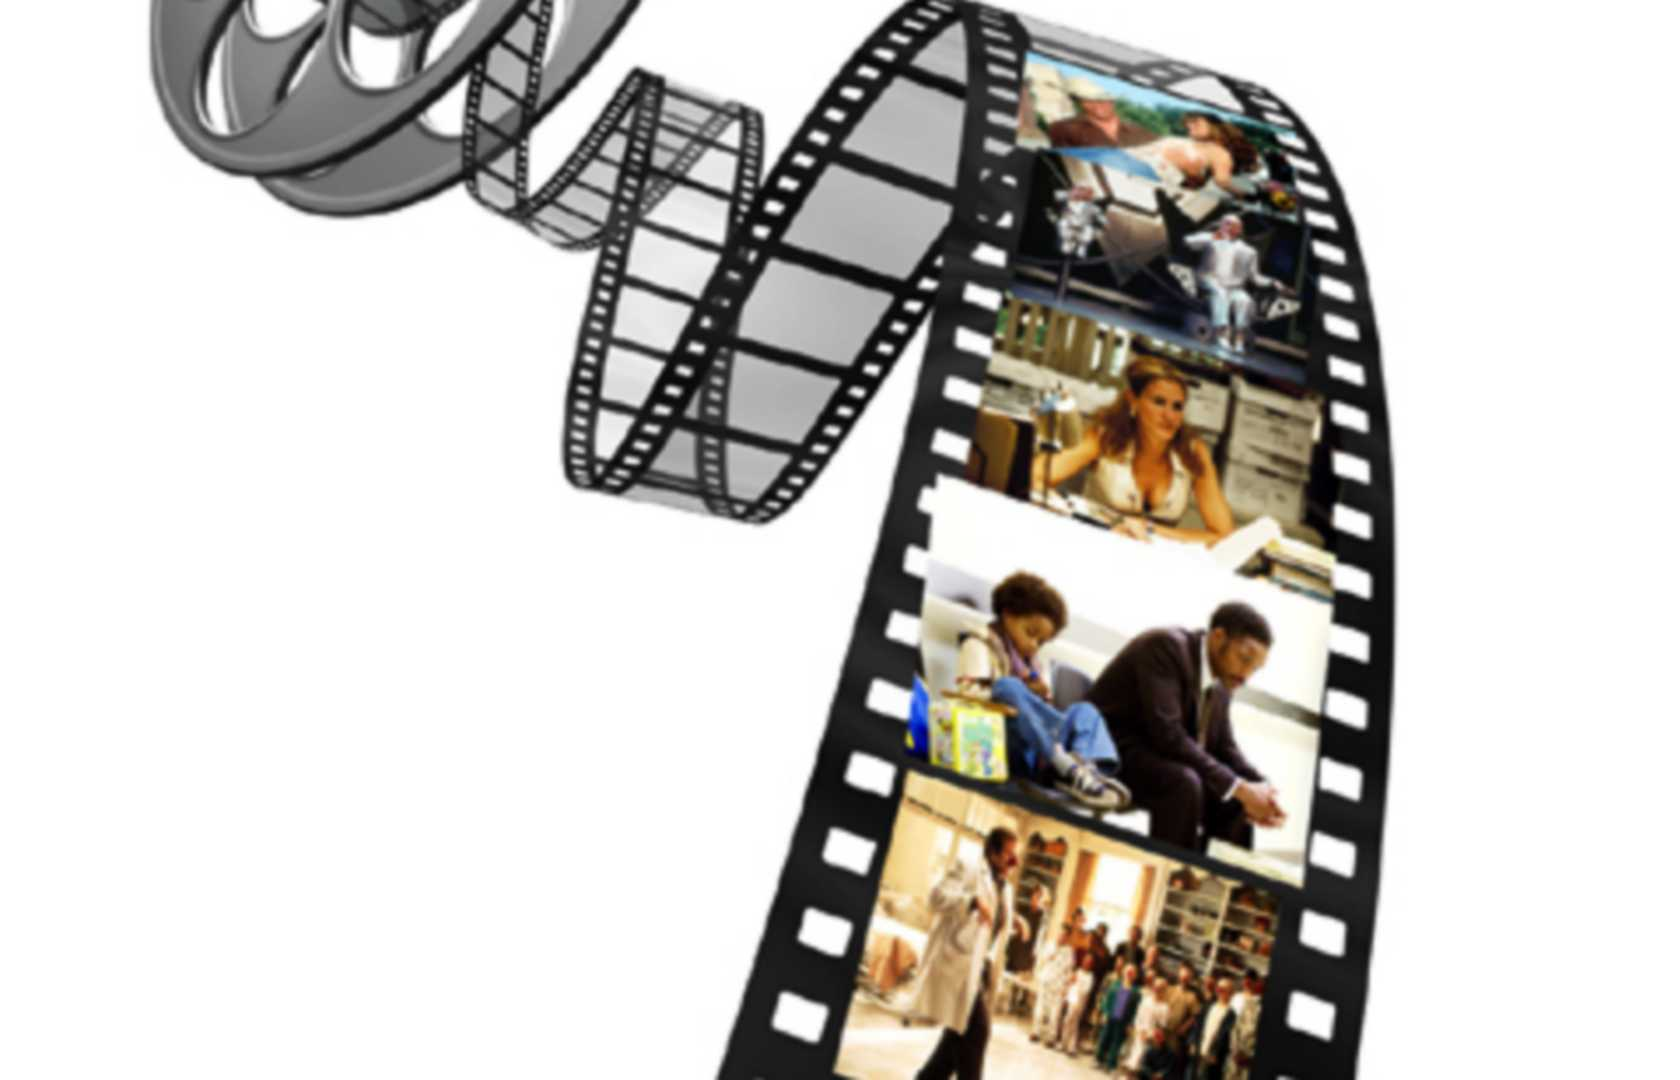 internet archive digital library of free books movies